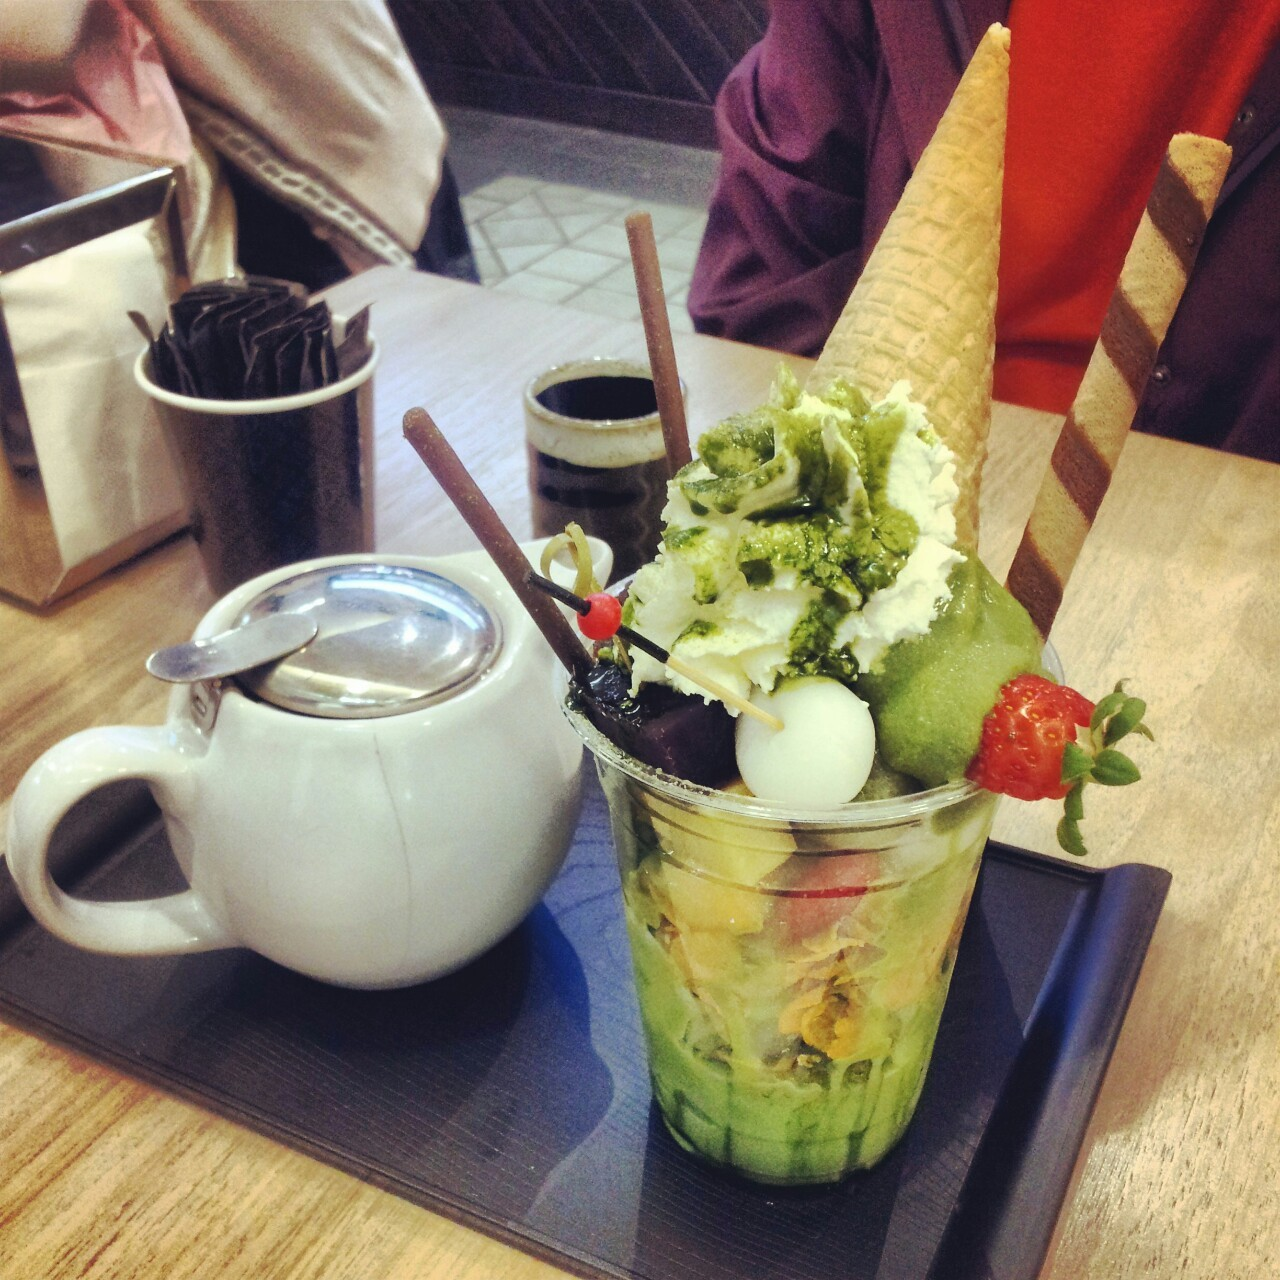 lonelytissues:  Yummy green tea parfait with a pot of hoji cha green tea :) @ chanoma cafe  Wonderful !